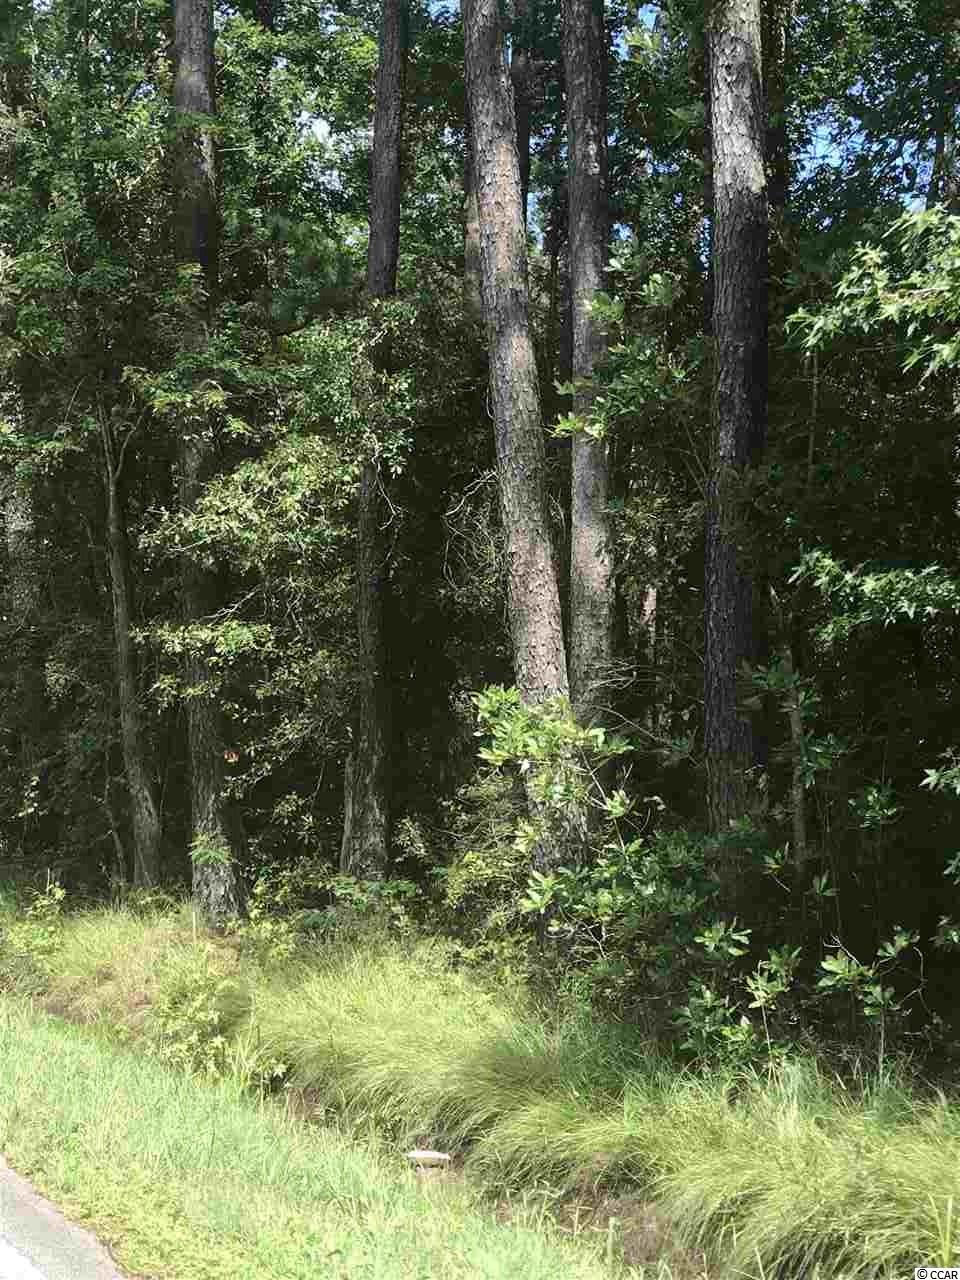 Nearly 6 acres of commerical property in the custest coast town of Little River, SC. The property is a 12 minute drive to Cherry Grove Beach access and 9 minutes from Little River shops, restuarants, casino boats and watersports! Land is zoned Commercial Forest Agriculture (CFA) that includes agriculture, forestry, low-density residential, commercial, social cultural, recreational, and religious uses. Easy access to hwy 9 and hwy 31. Listing agent is related to seller.